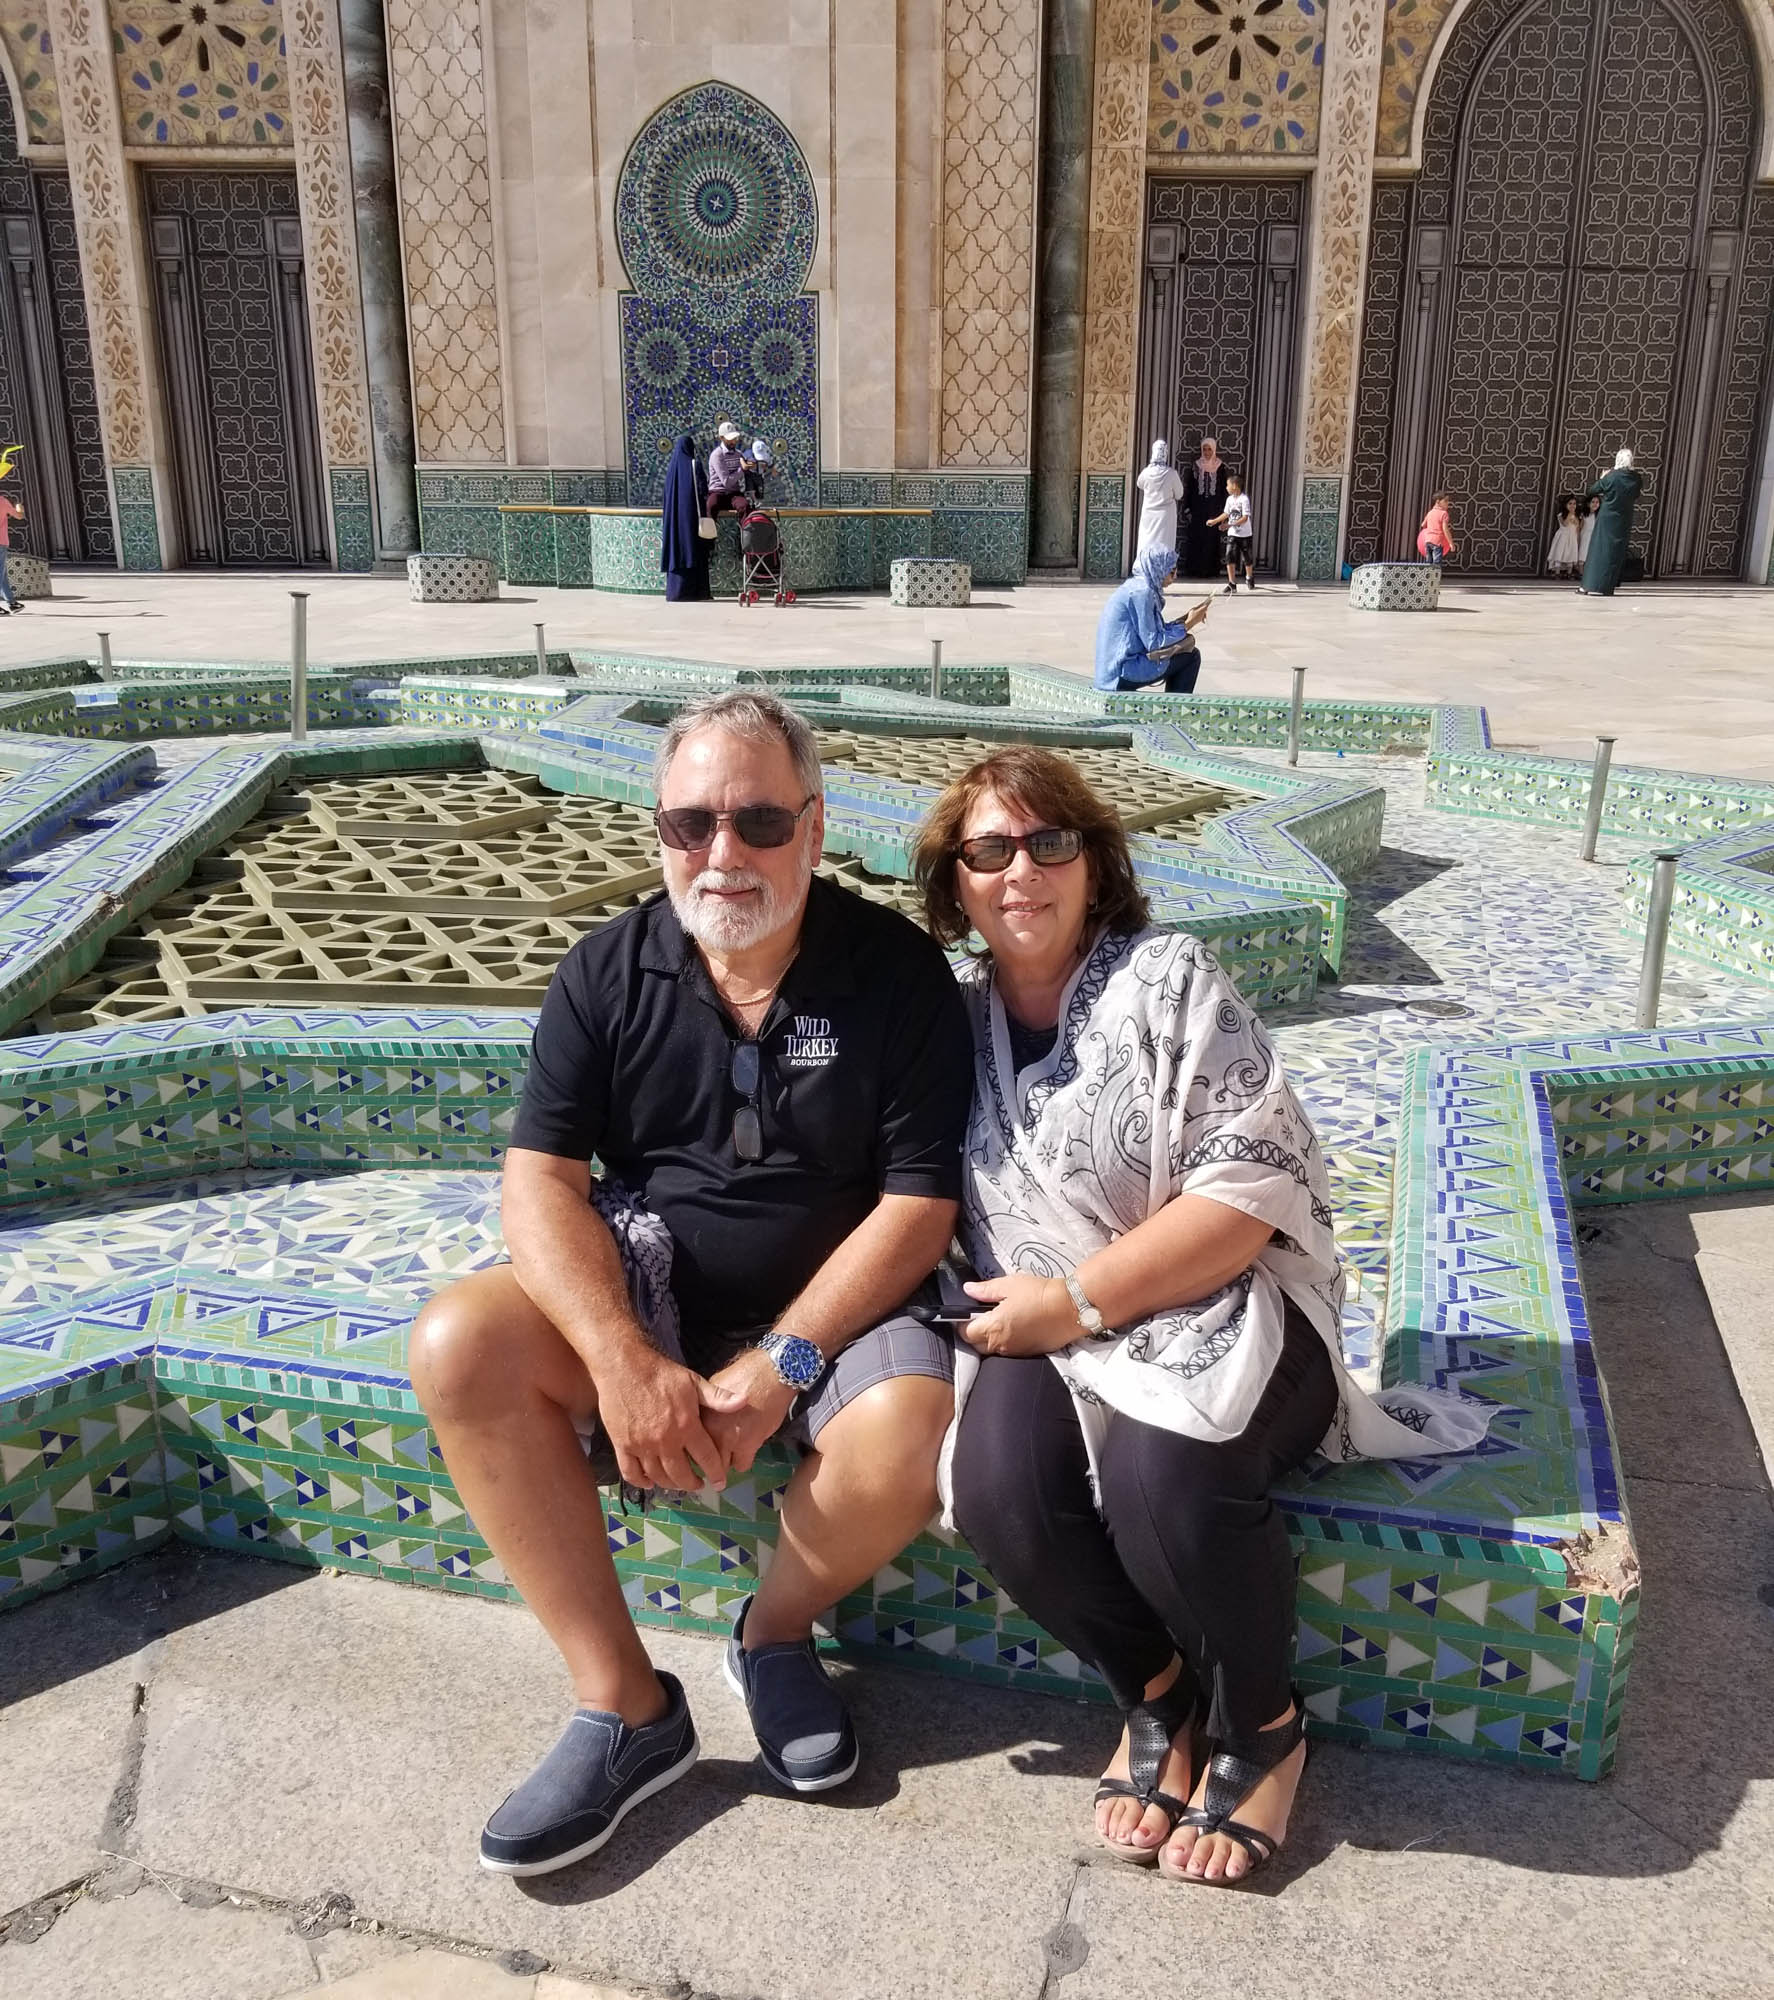 Couple sitting near a fountain in a Mosque in Morocco